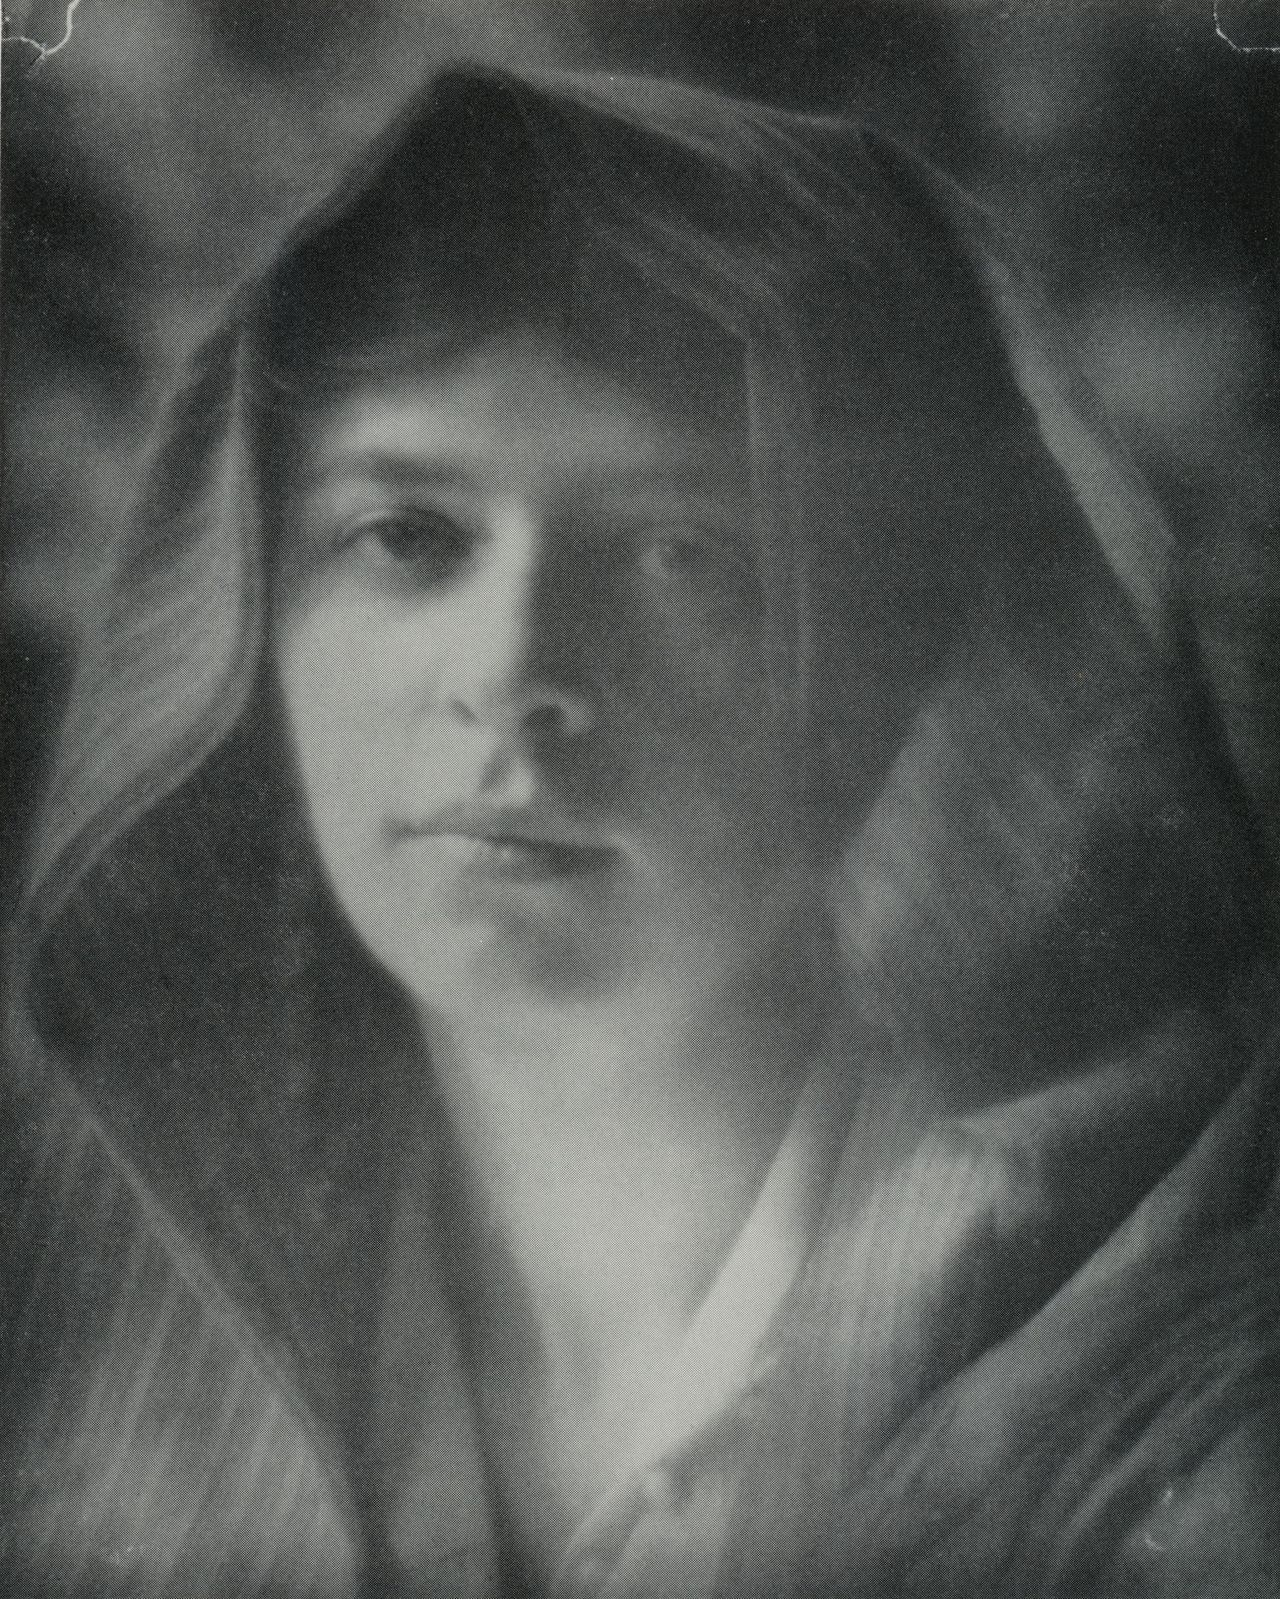 William Gordon Shields - Emma - Platinum photograph, August 1916 From Pictorial Incidents: The Photography of William Gordon Shields